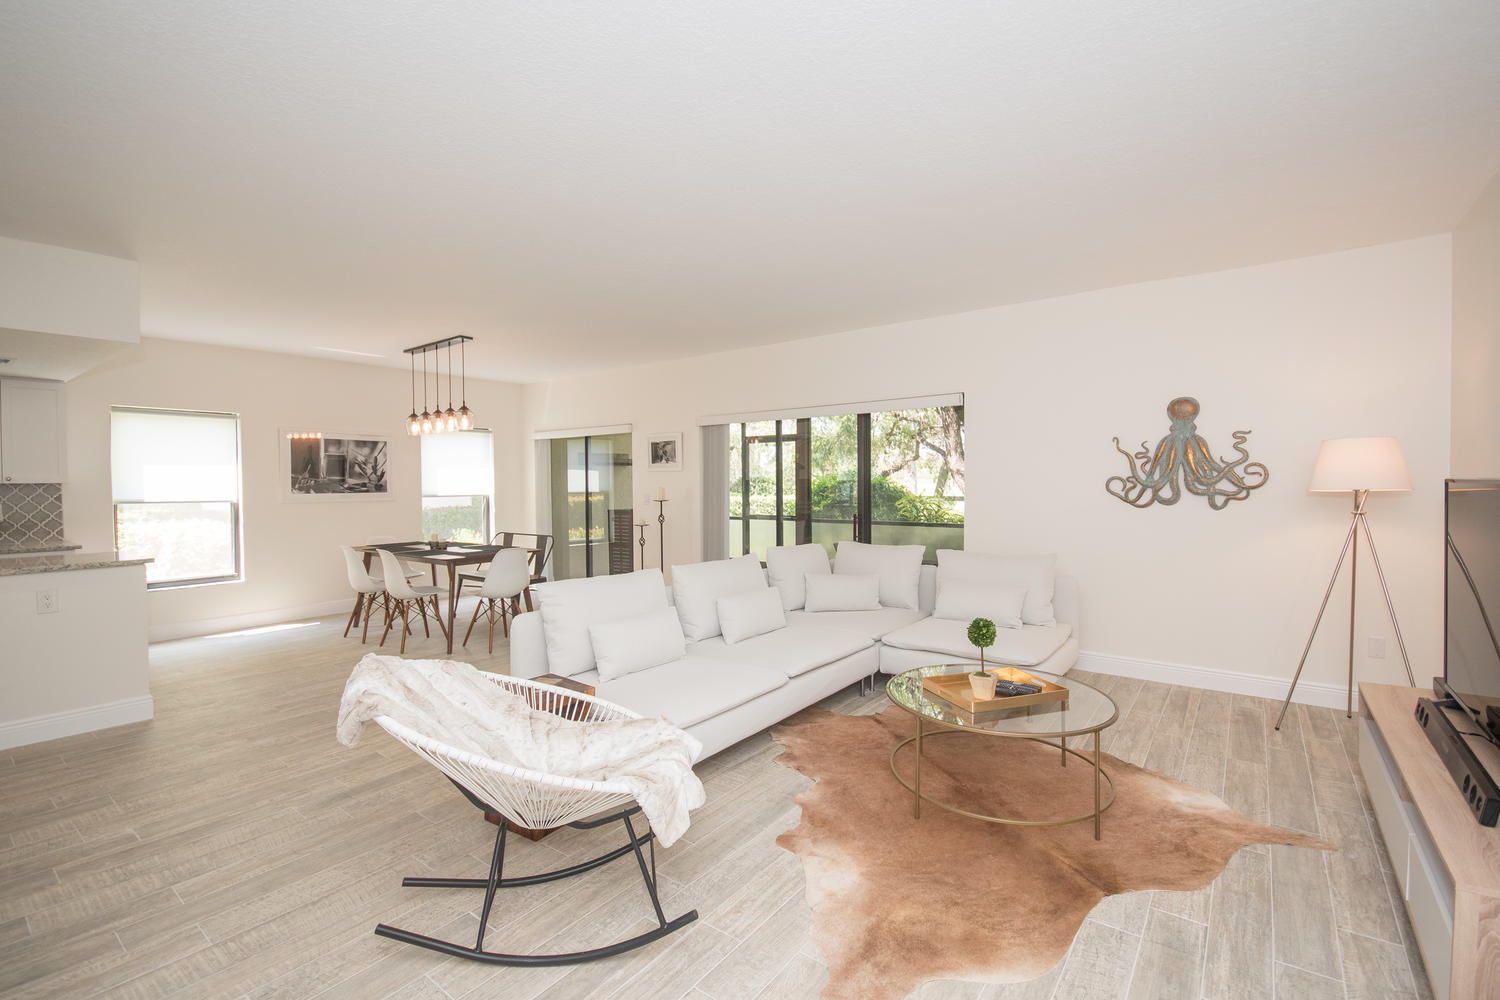 11311 Pond View Drive, Wellington, Florida 33414, 3 Bedrooms Bedrooms, ,3 BathroomsBathrooms,Condo/Coop,For Rent,Palm Beach Polo and Country Club Club,Pond View,1,RX-10542545